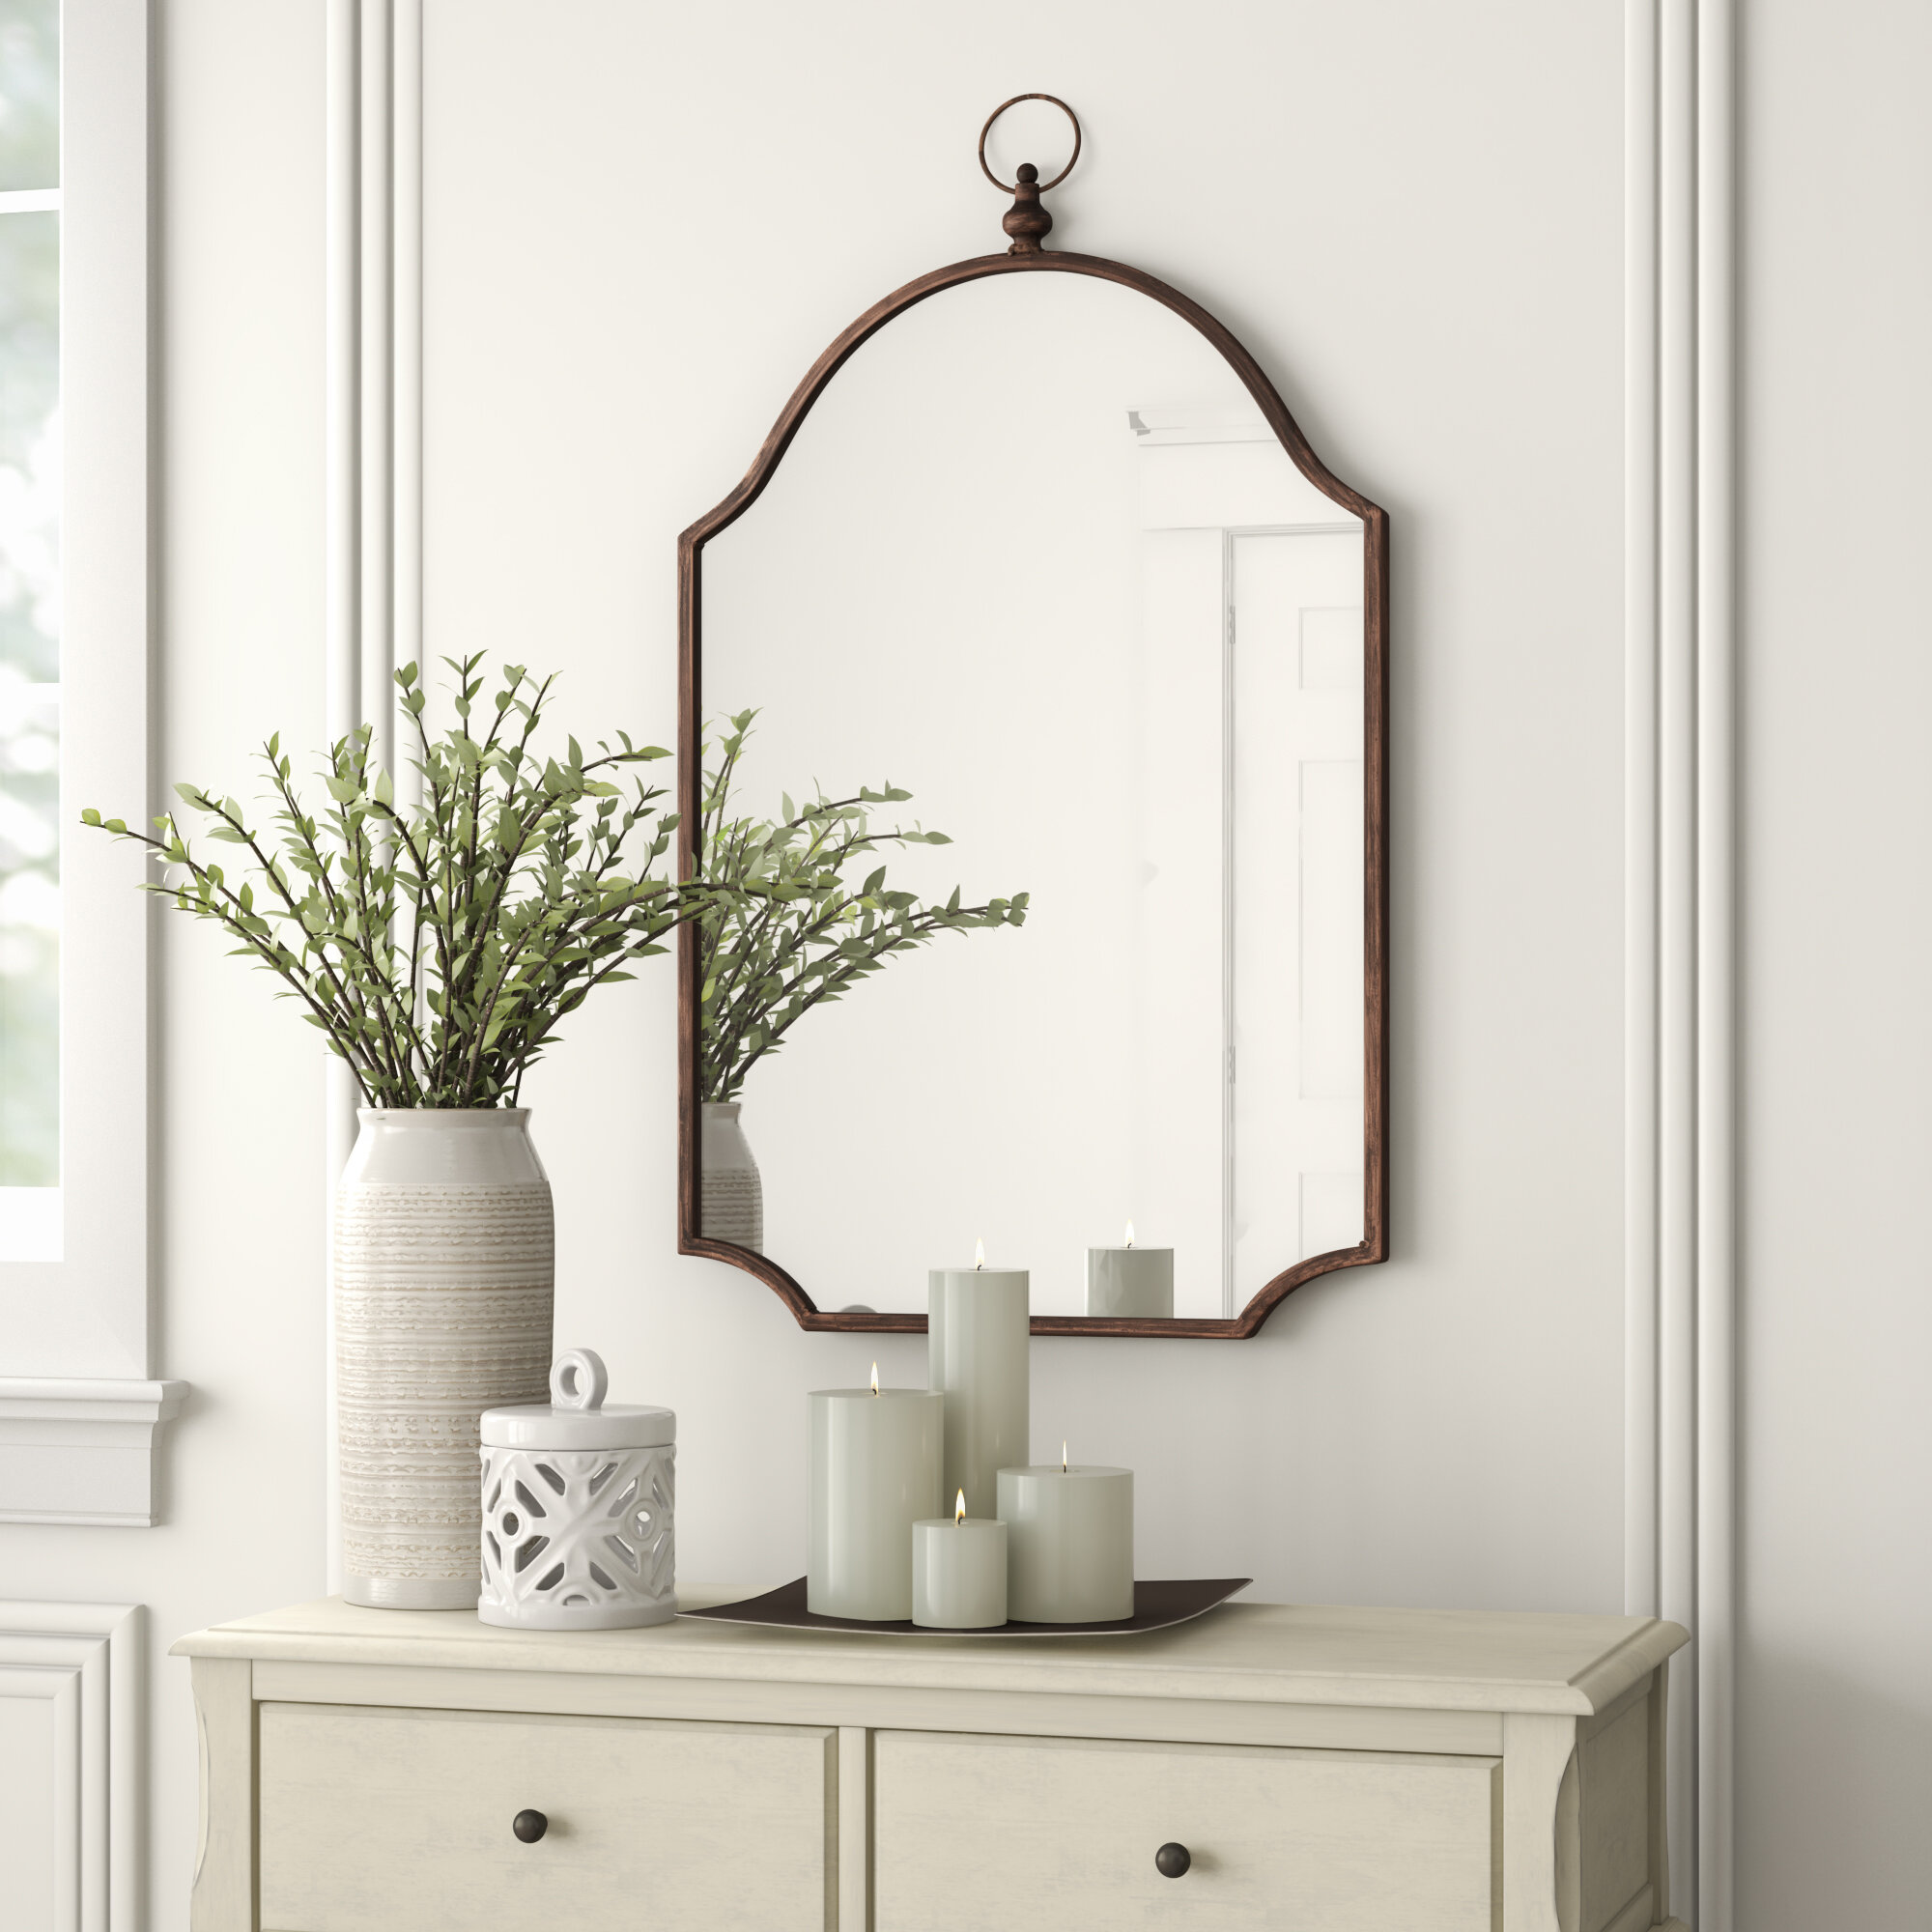 Arch Crowned Top Wall Mirrors You Ll Love In 2021 Wayfair